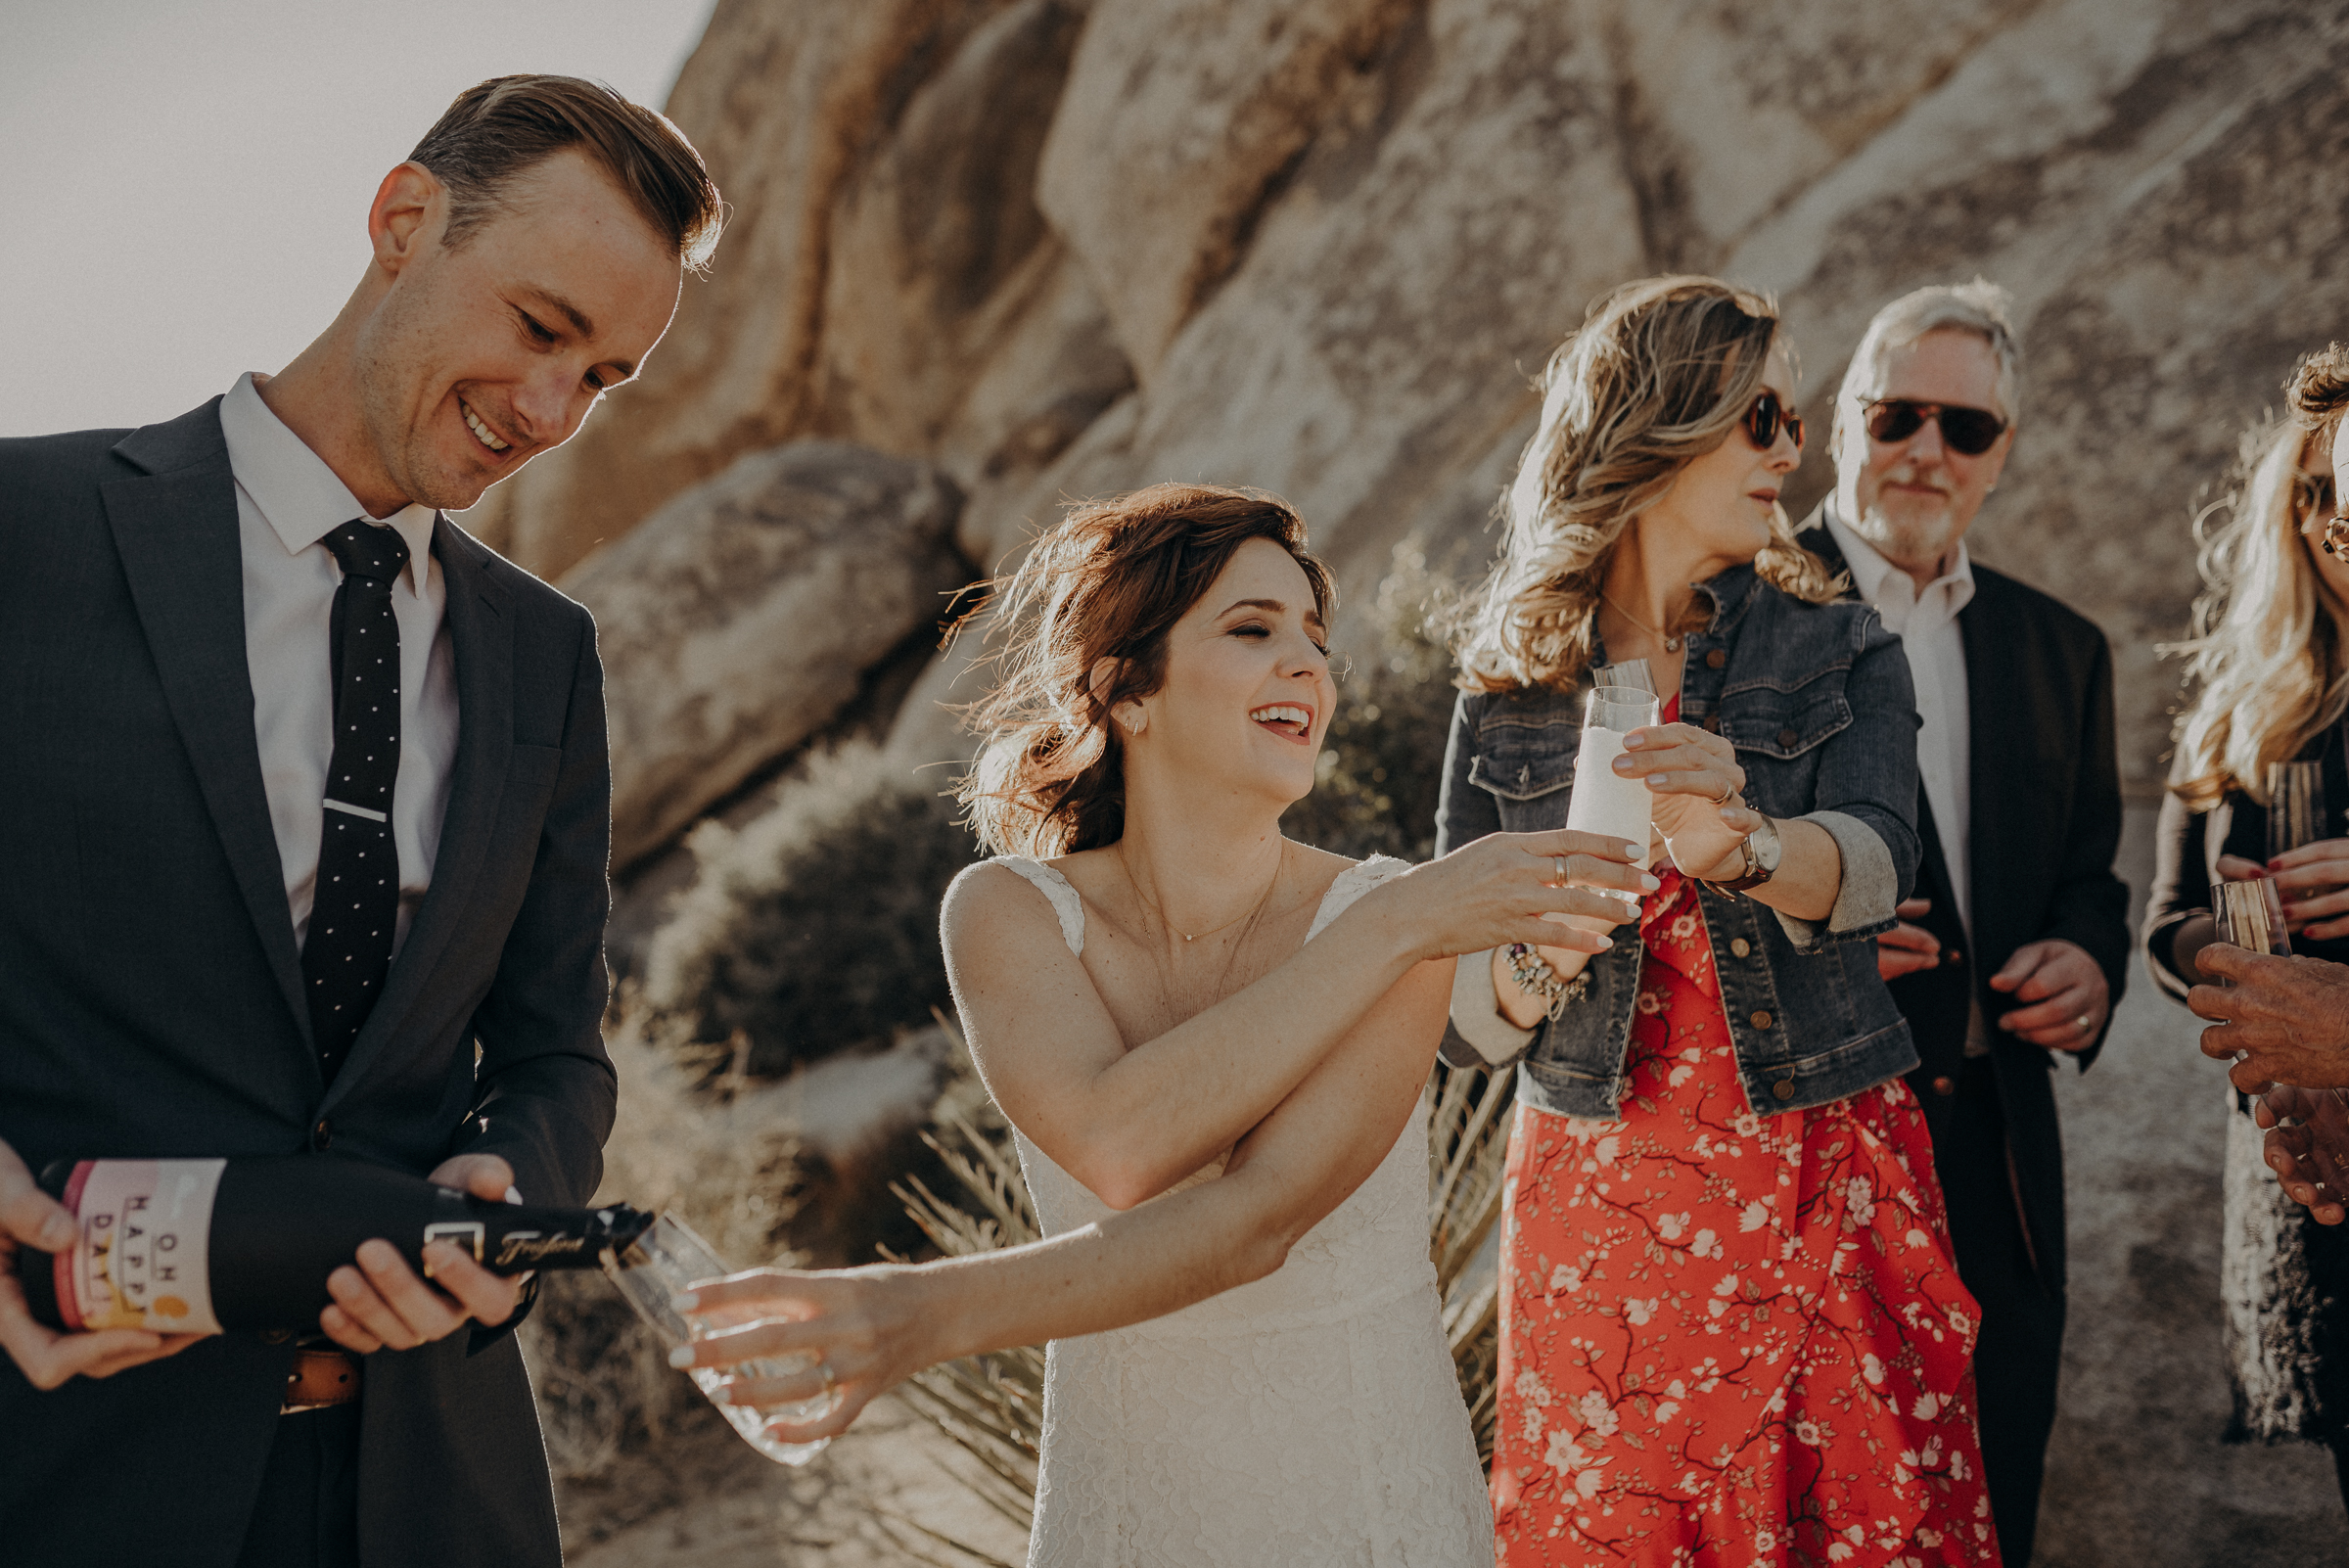 Joshua Tree Elopement - Los Angeles Wedding Photographers - IsaiahAndTaylor.com-043.jpg